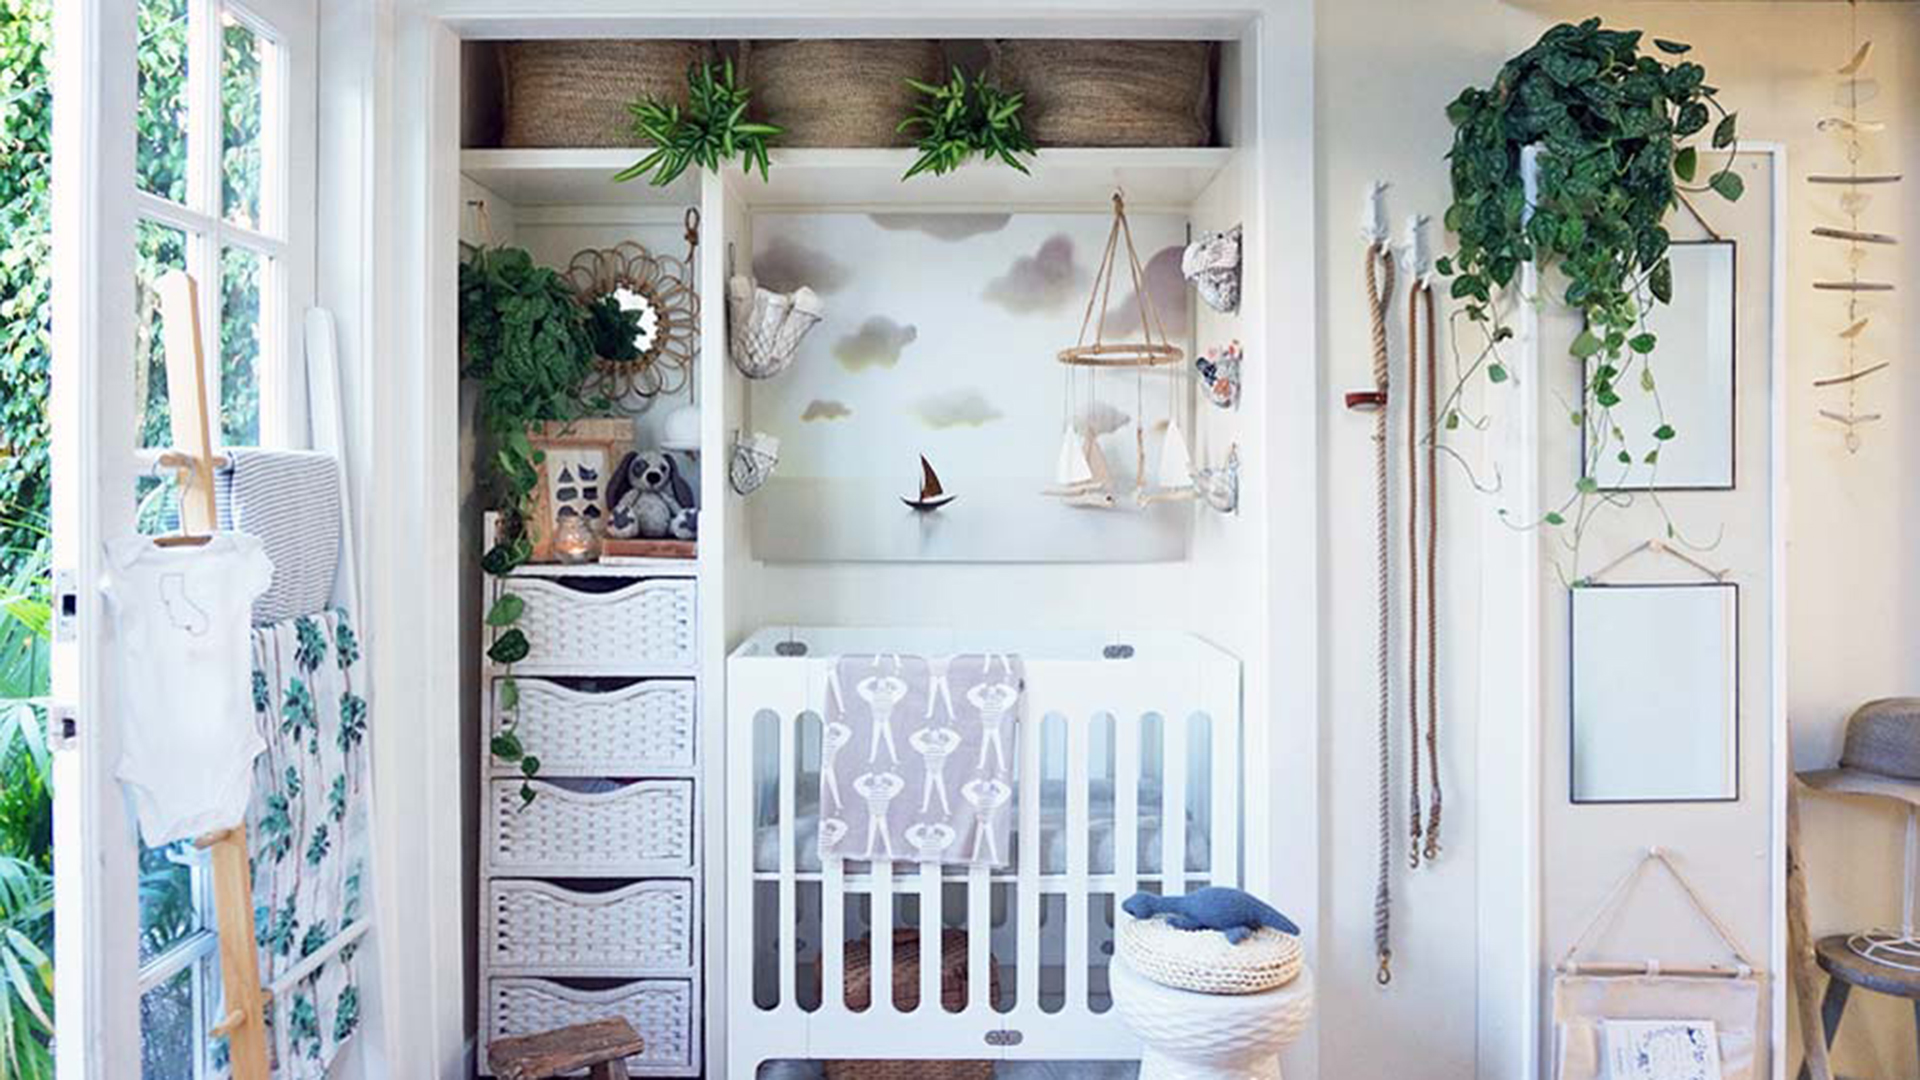 Tiny home nursery: This room is pint-sized perfection